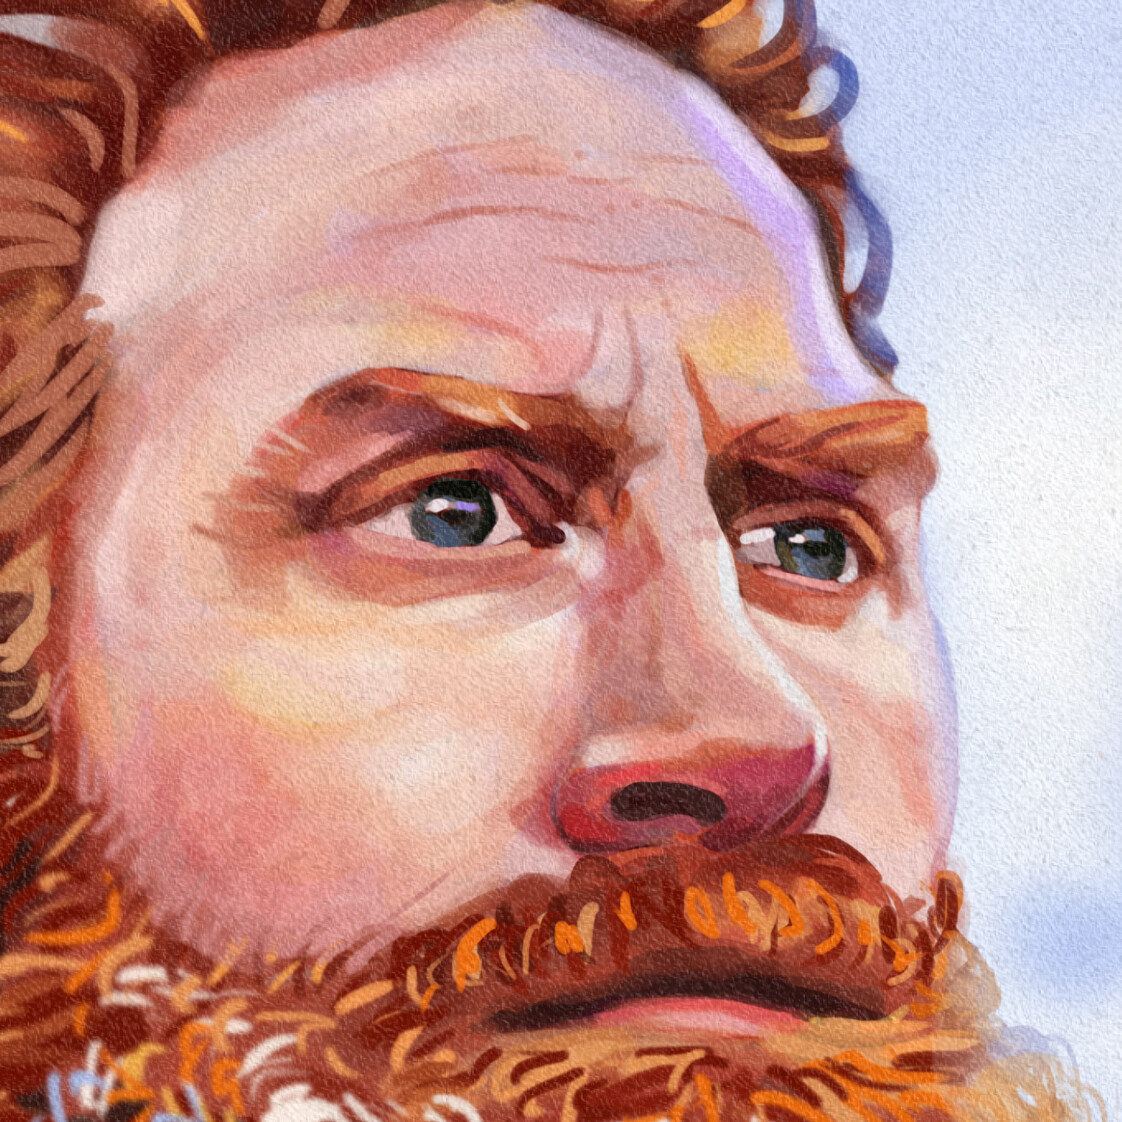 Tormund Giantsbane - close-up